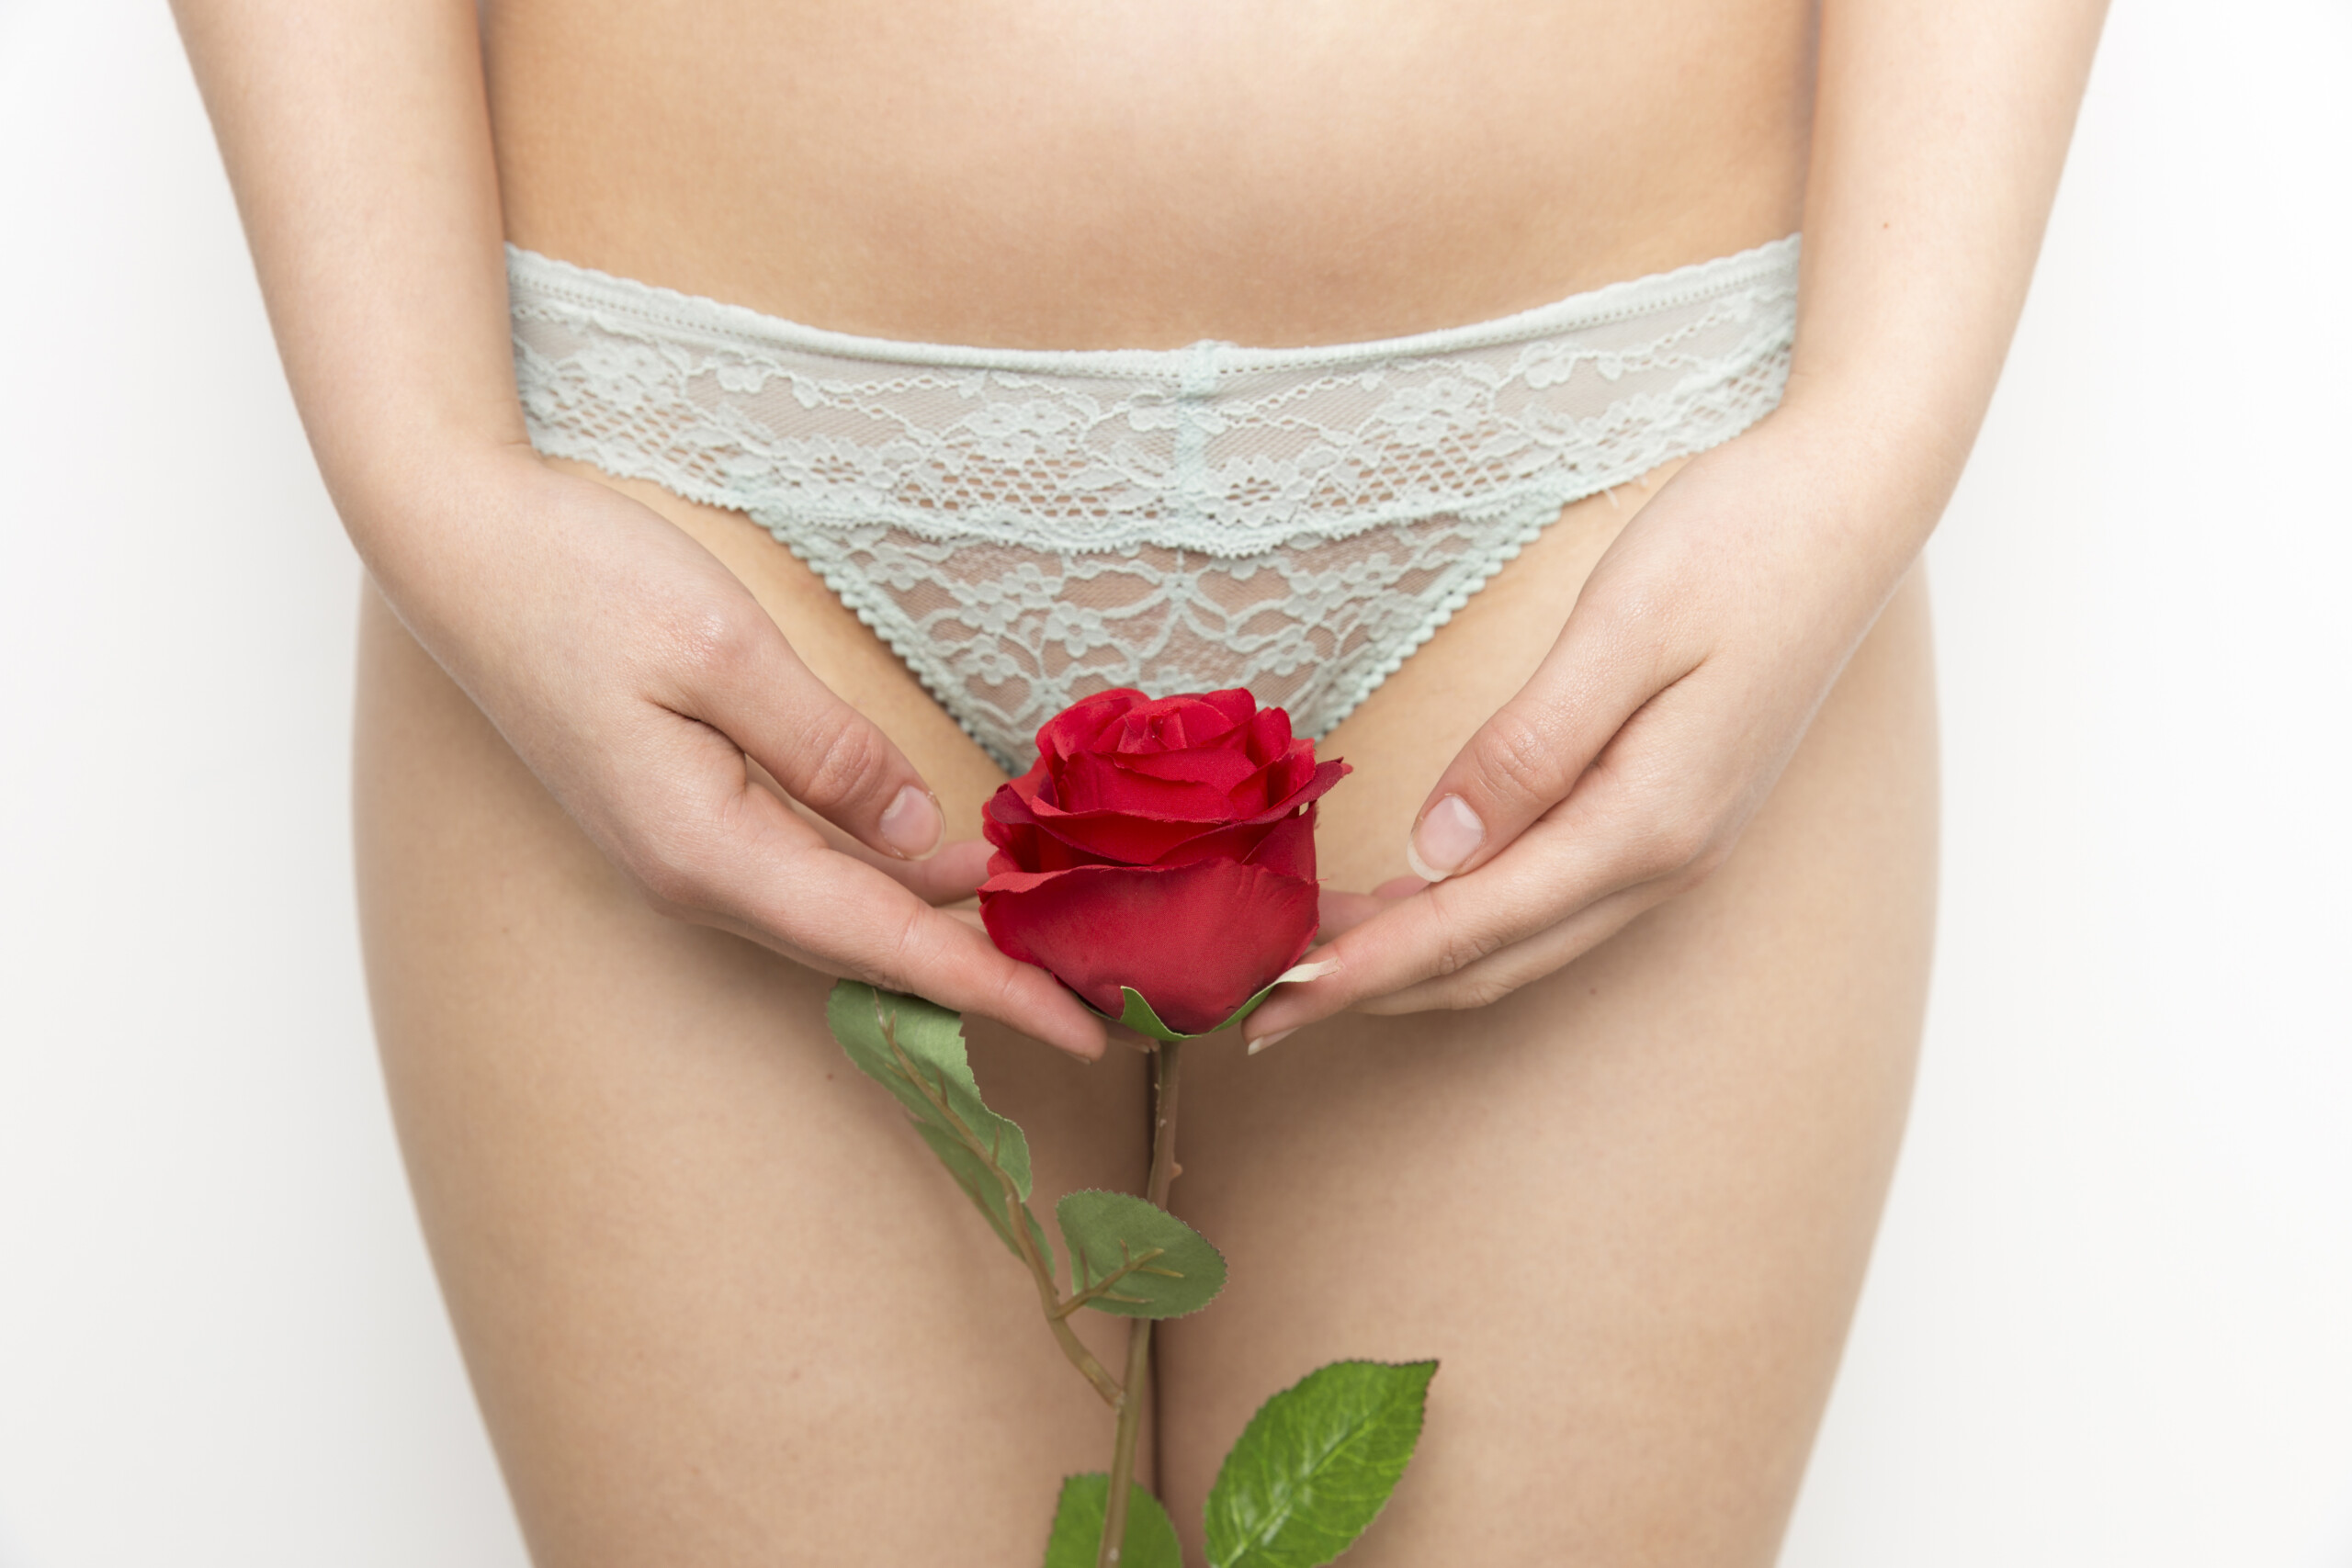 Why Are Acid Reflux and Gas Worse Right Before Menstruation?